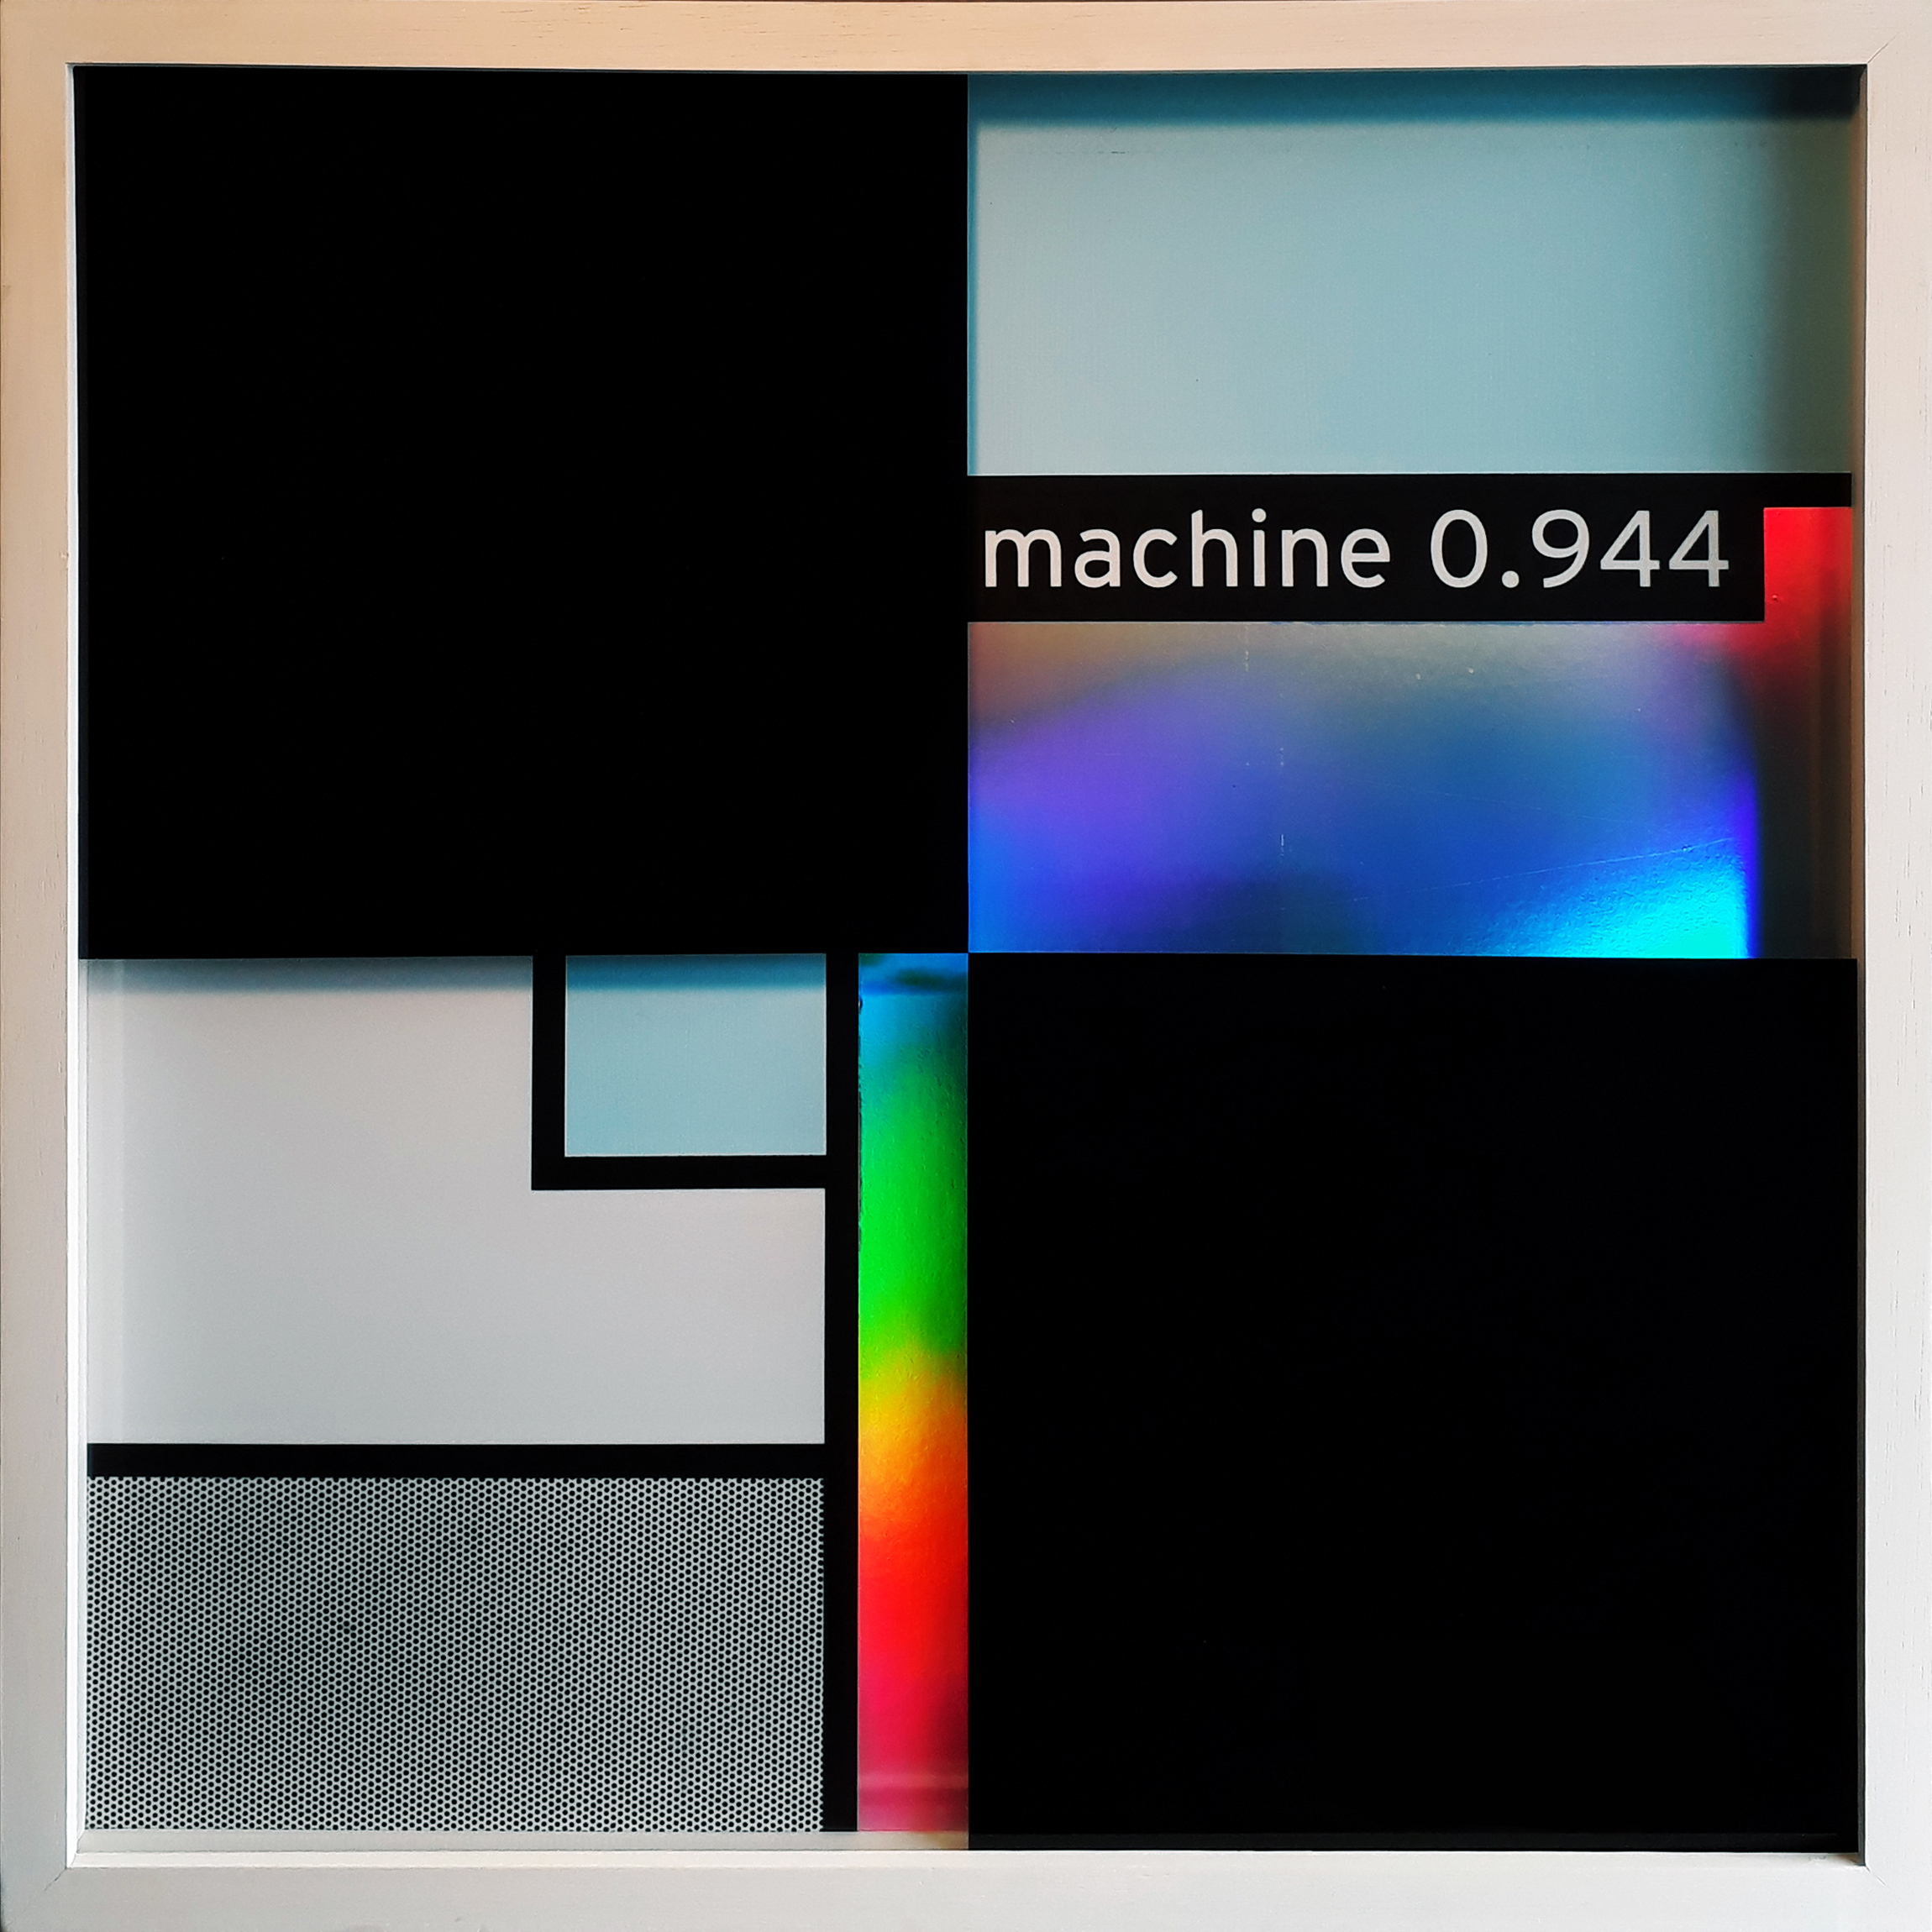 AI MACHINE 0.944